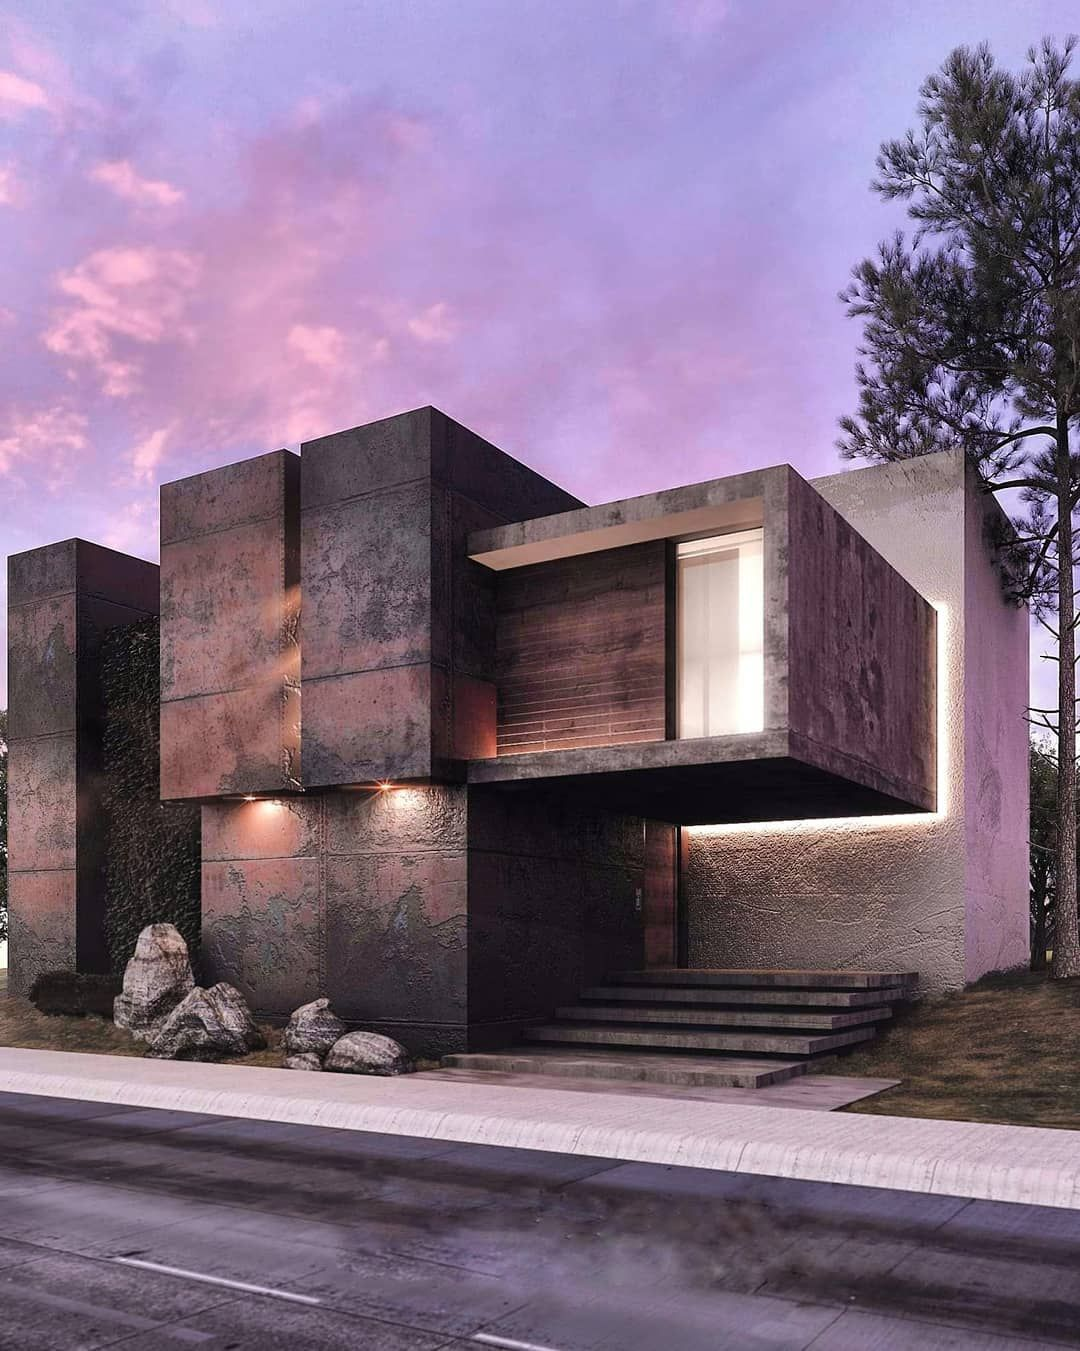 Amazing architecture on instagram modern house visualized by zamo sea serpent zamoseaserpent mexico 3dsmax архитектура www amazin